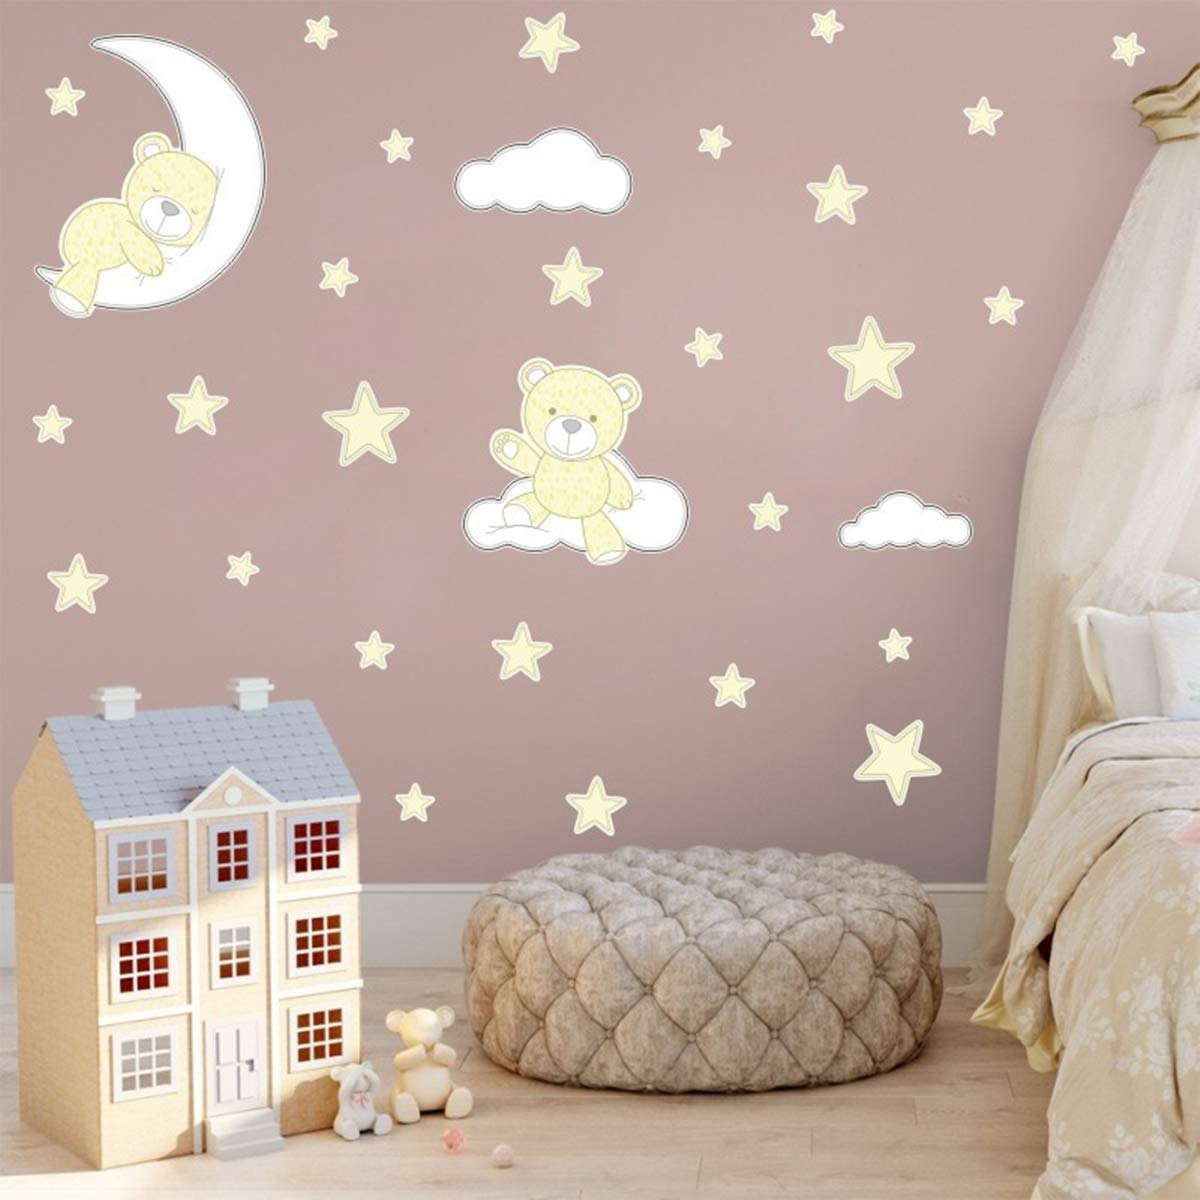 VIIRY Cartoon Cute Bear Sleeping on Moon Stars Sticker Decals,Peel and Stick Removable Wall Stickers for Kids Nursery Bedroom Living Room,18.9 x14.2inch (Gold)